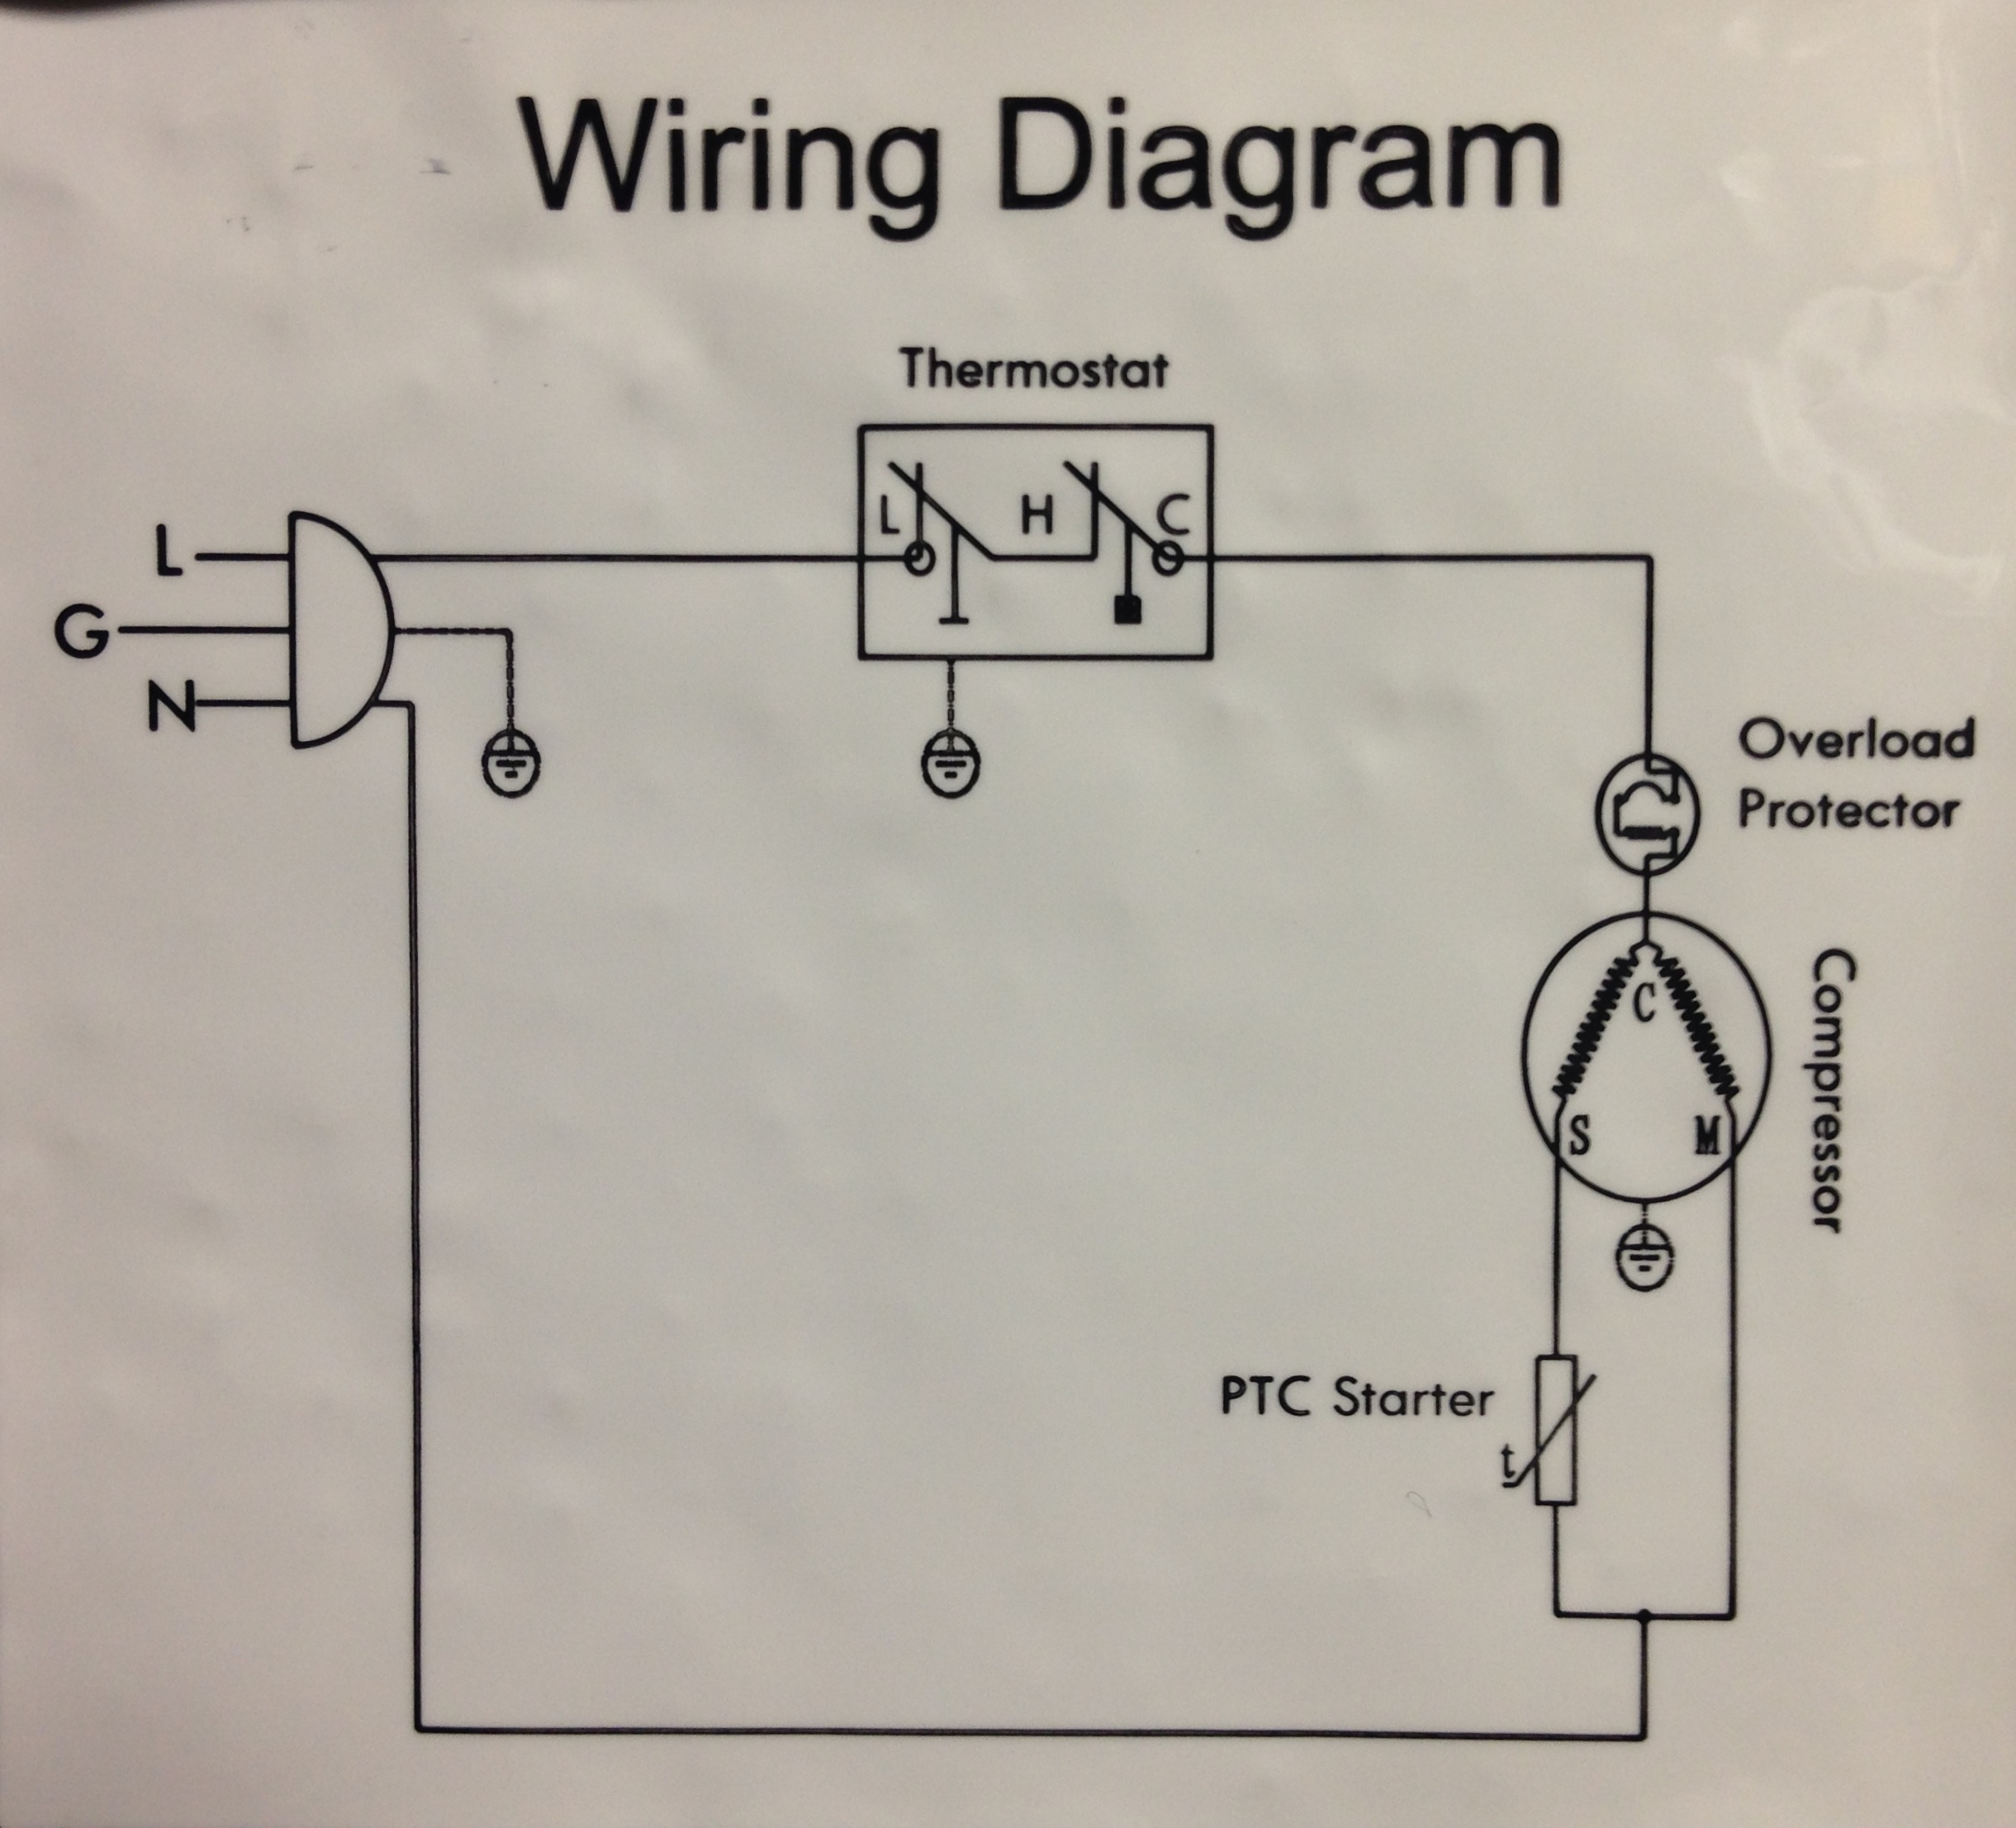 Refrigeration Compressor Wiring Diagram | Manual E-Books - Refrigerator Compressor Wiring Diagram